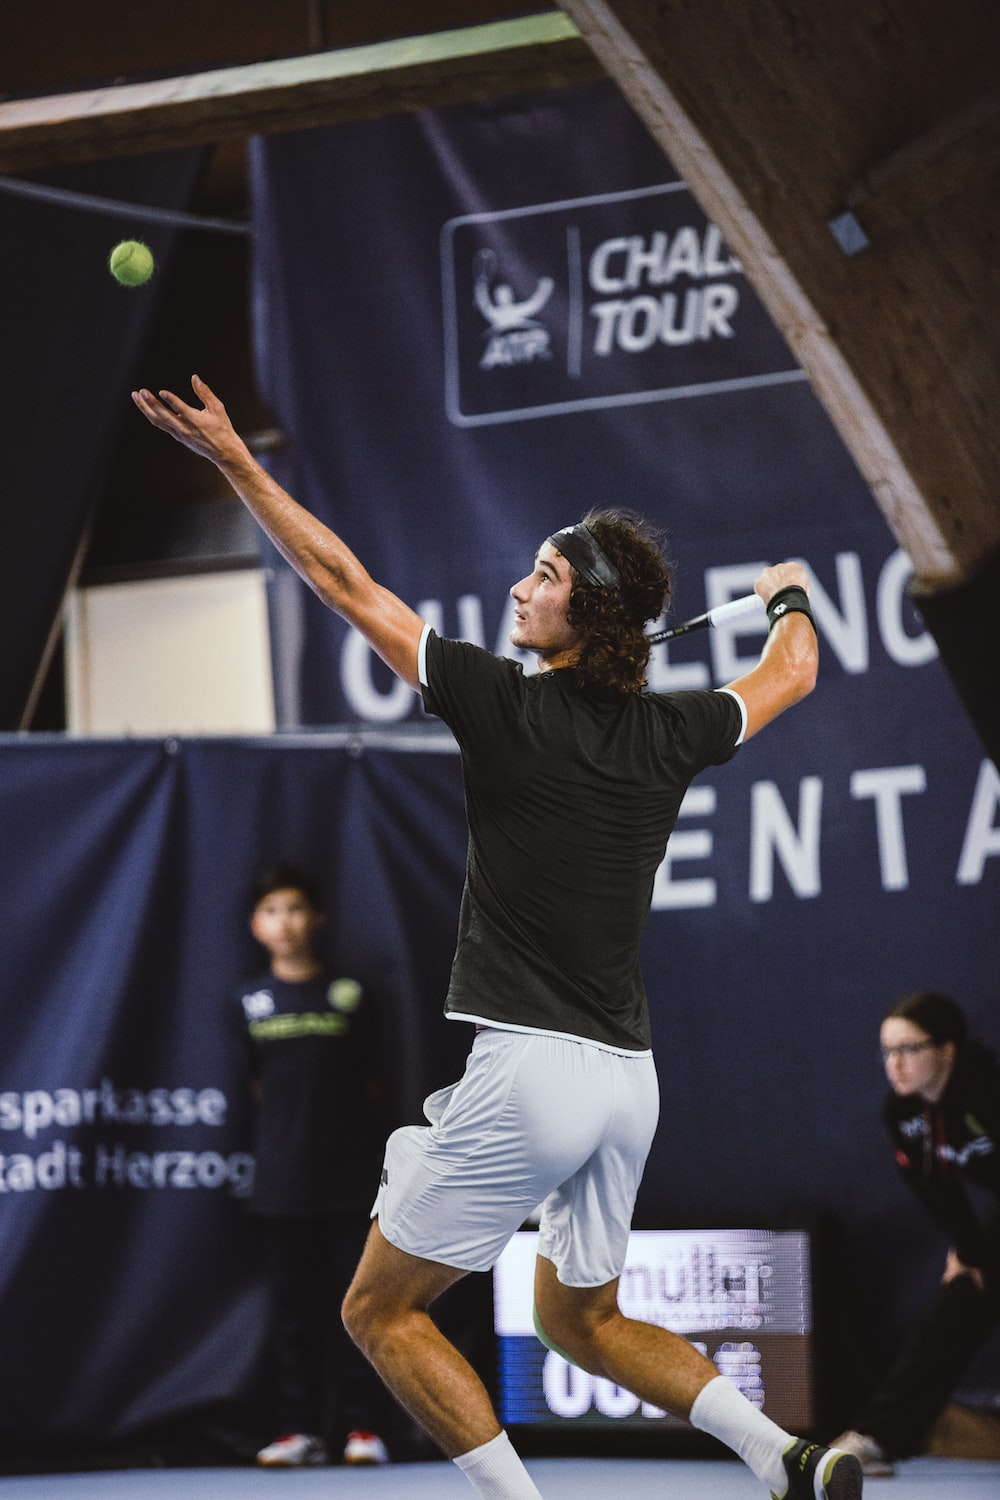 shallow focus photo of man playing tennis